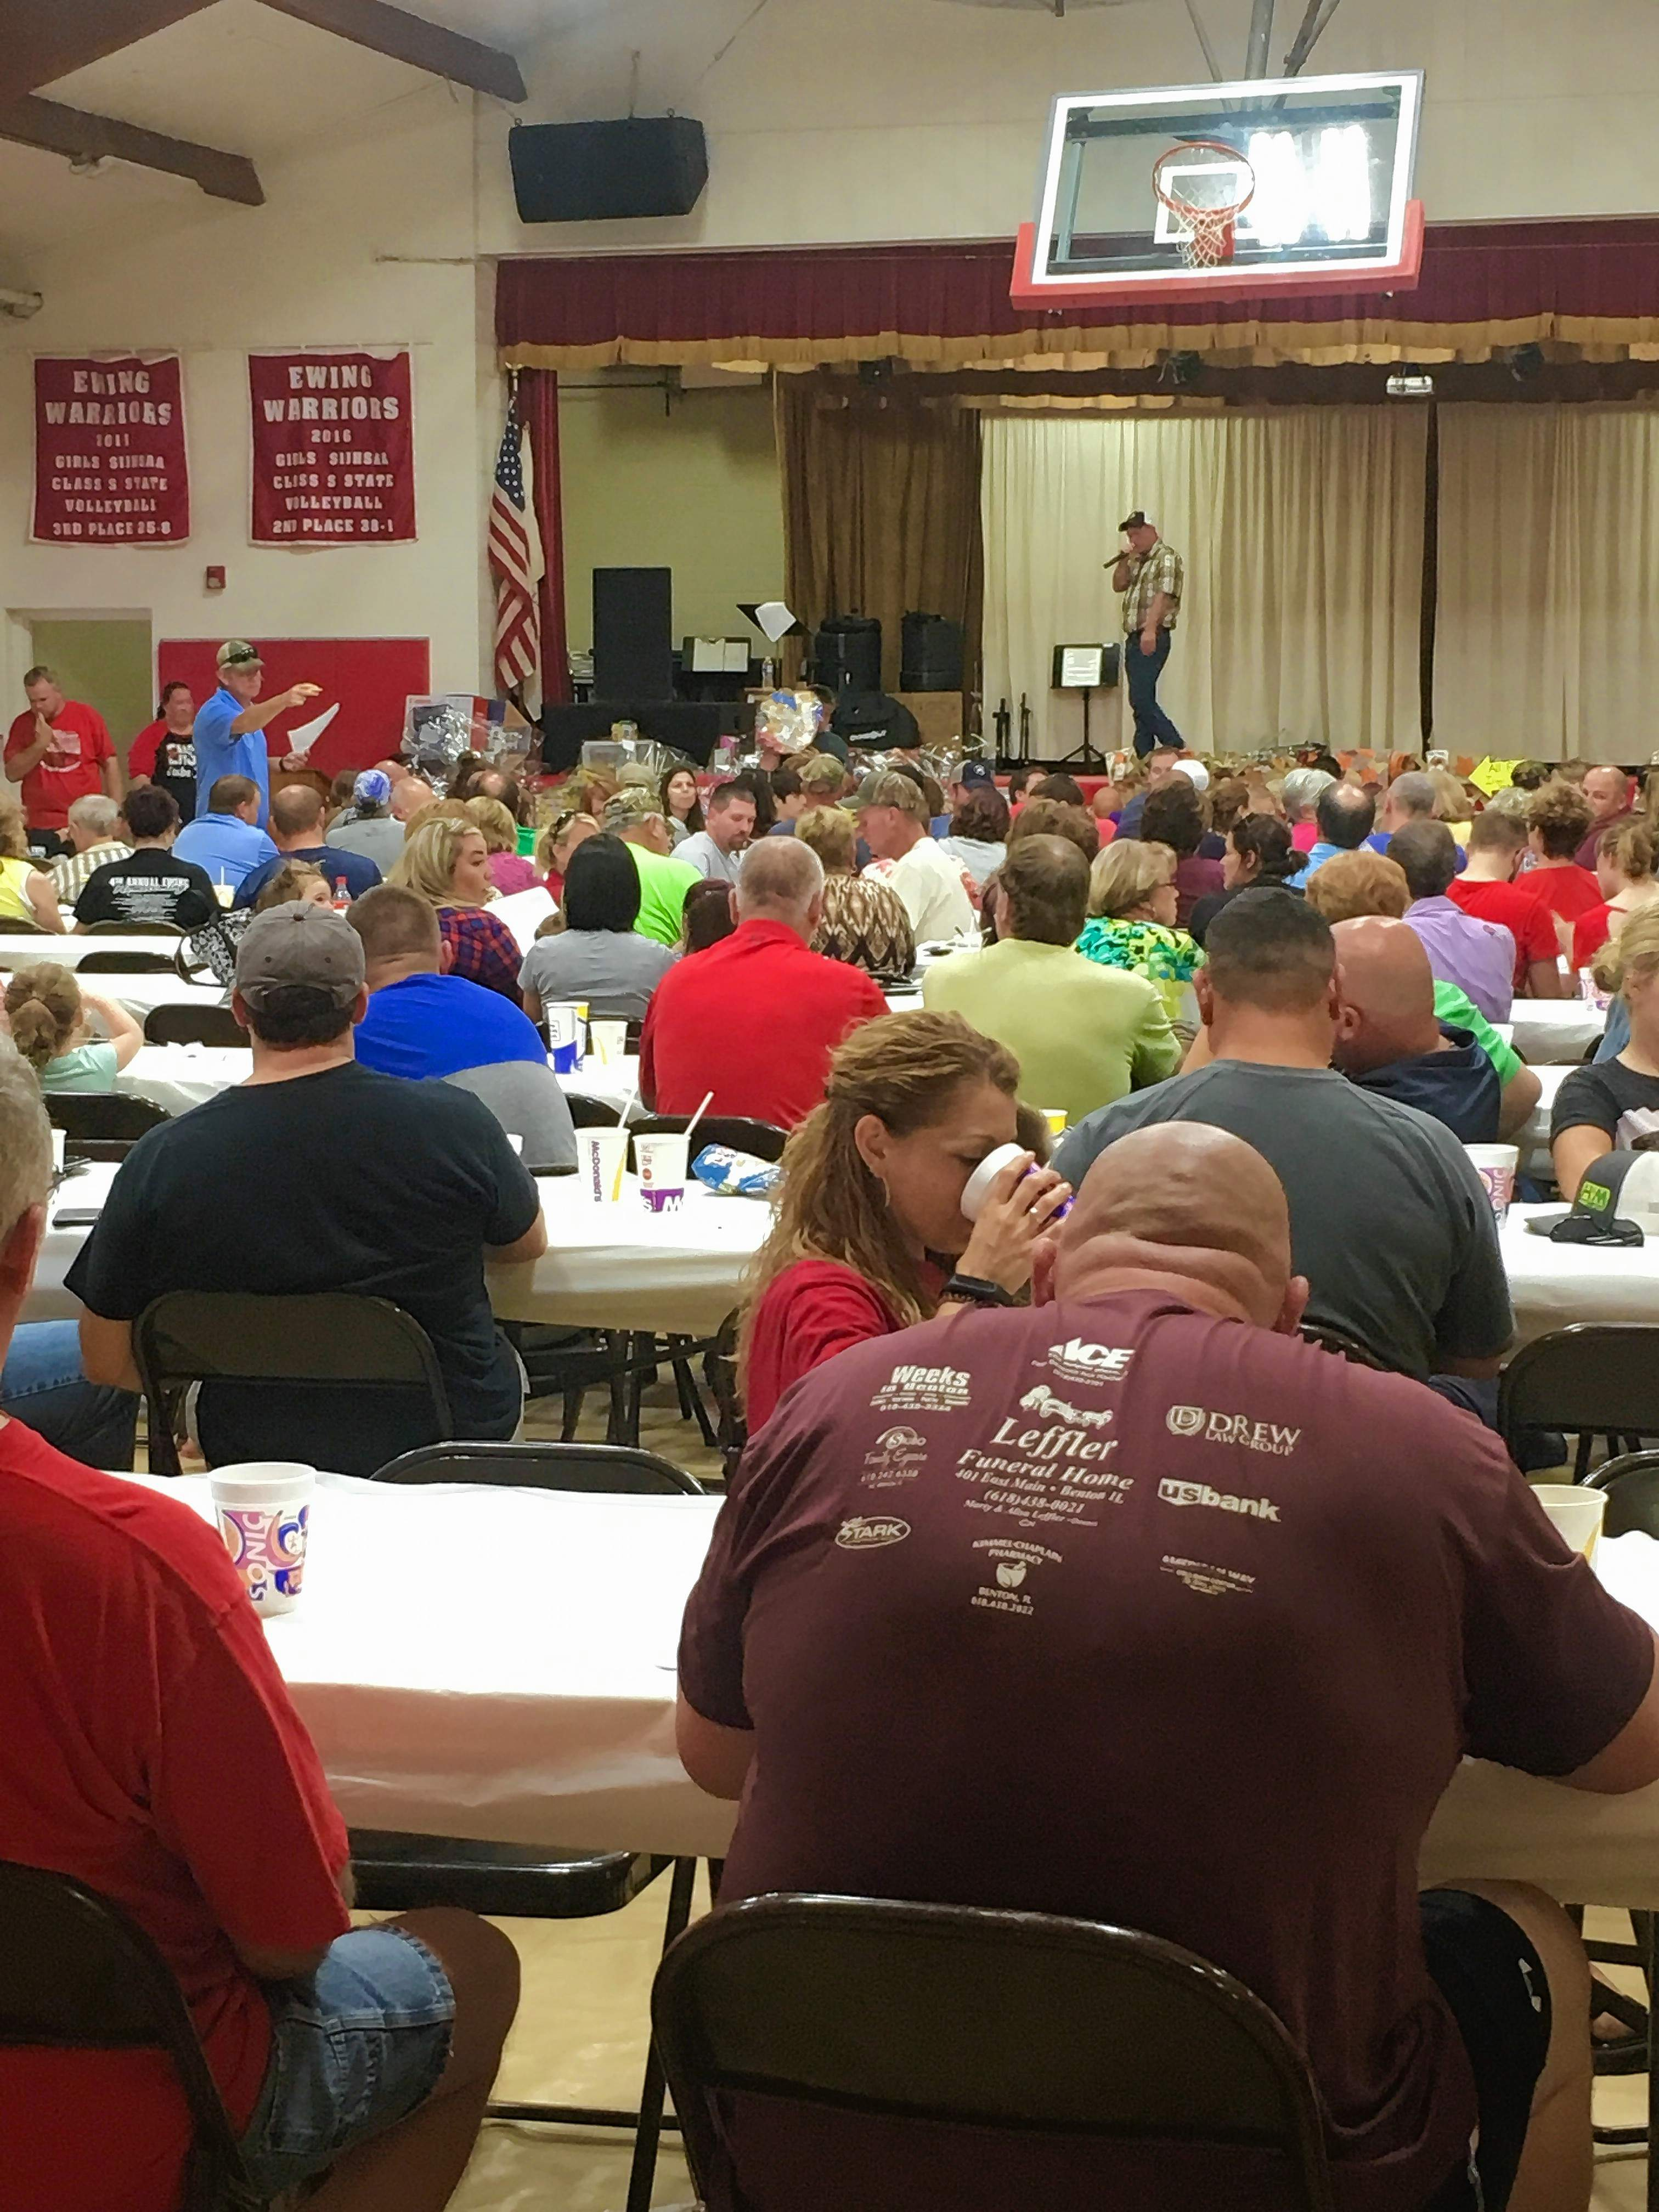 An auction followed the barbecue dinner to wrap up the Ewing Homecoming on Saturday. The annual event raises money for Ewing Northern Grade School.